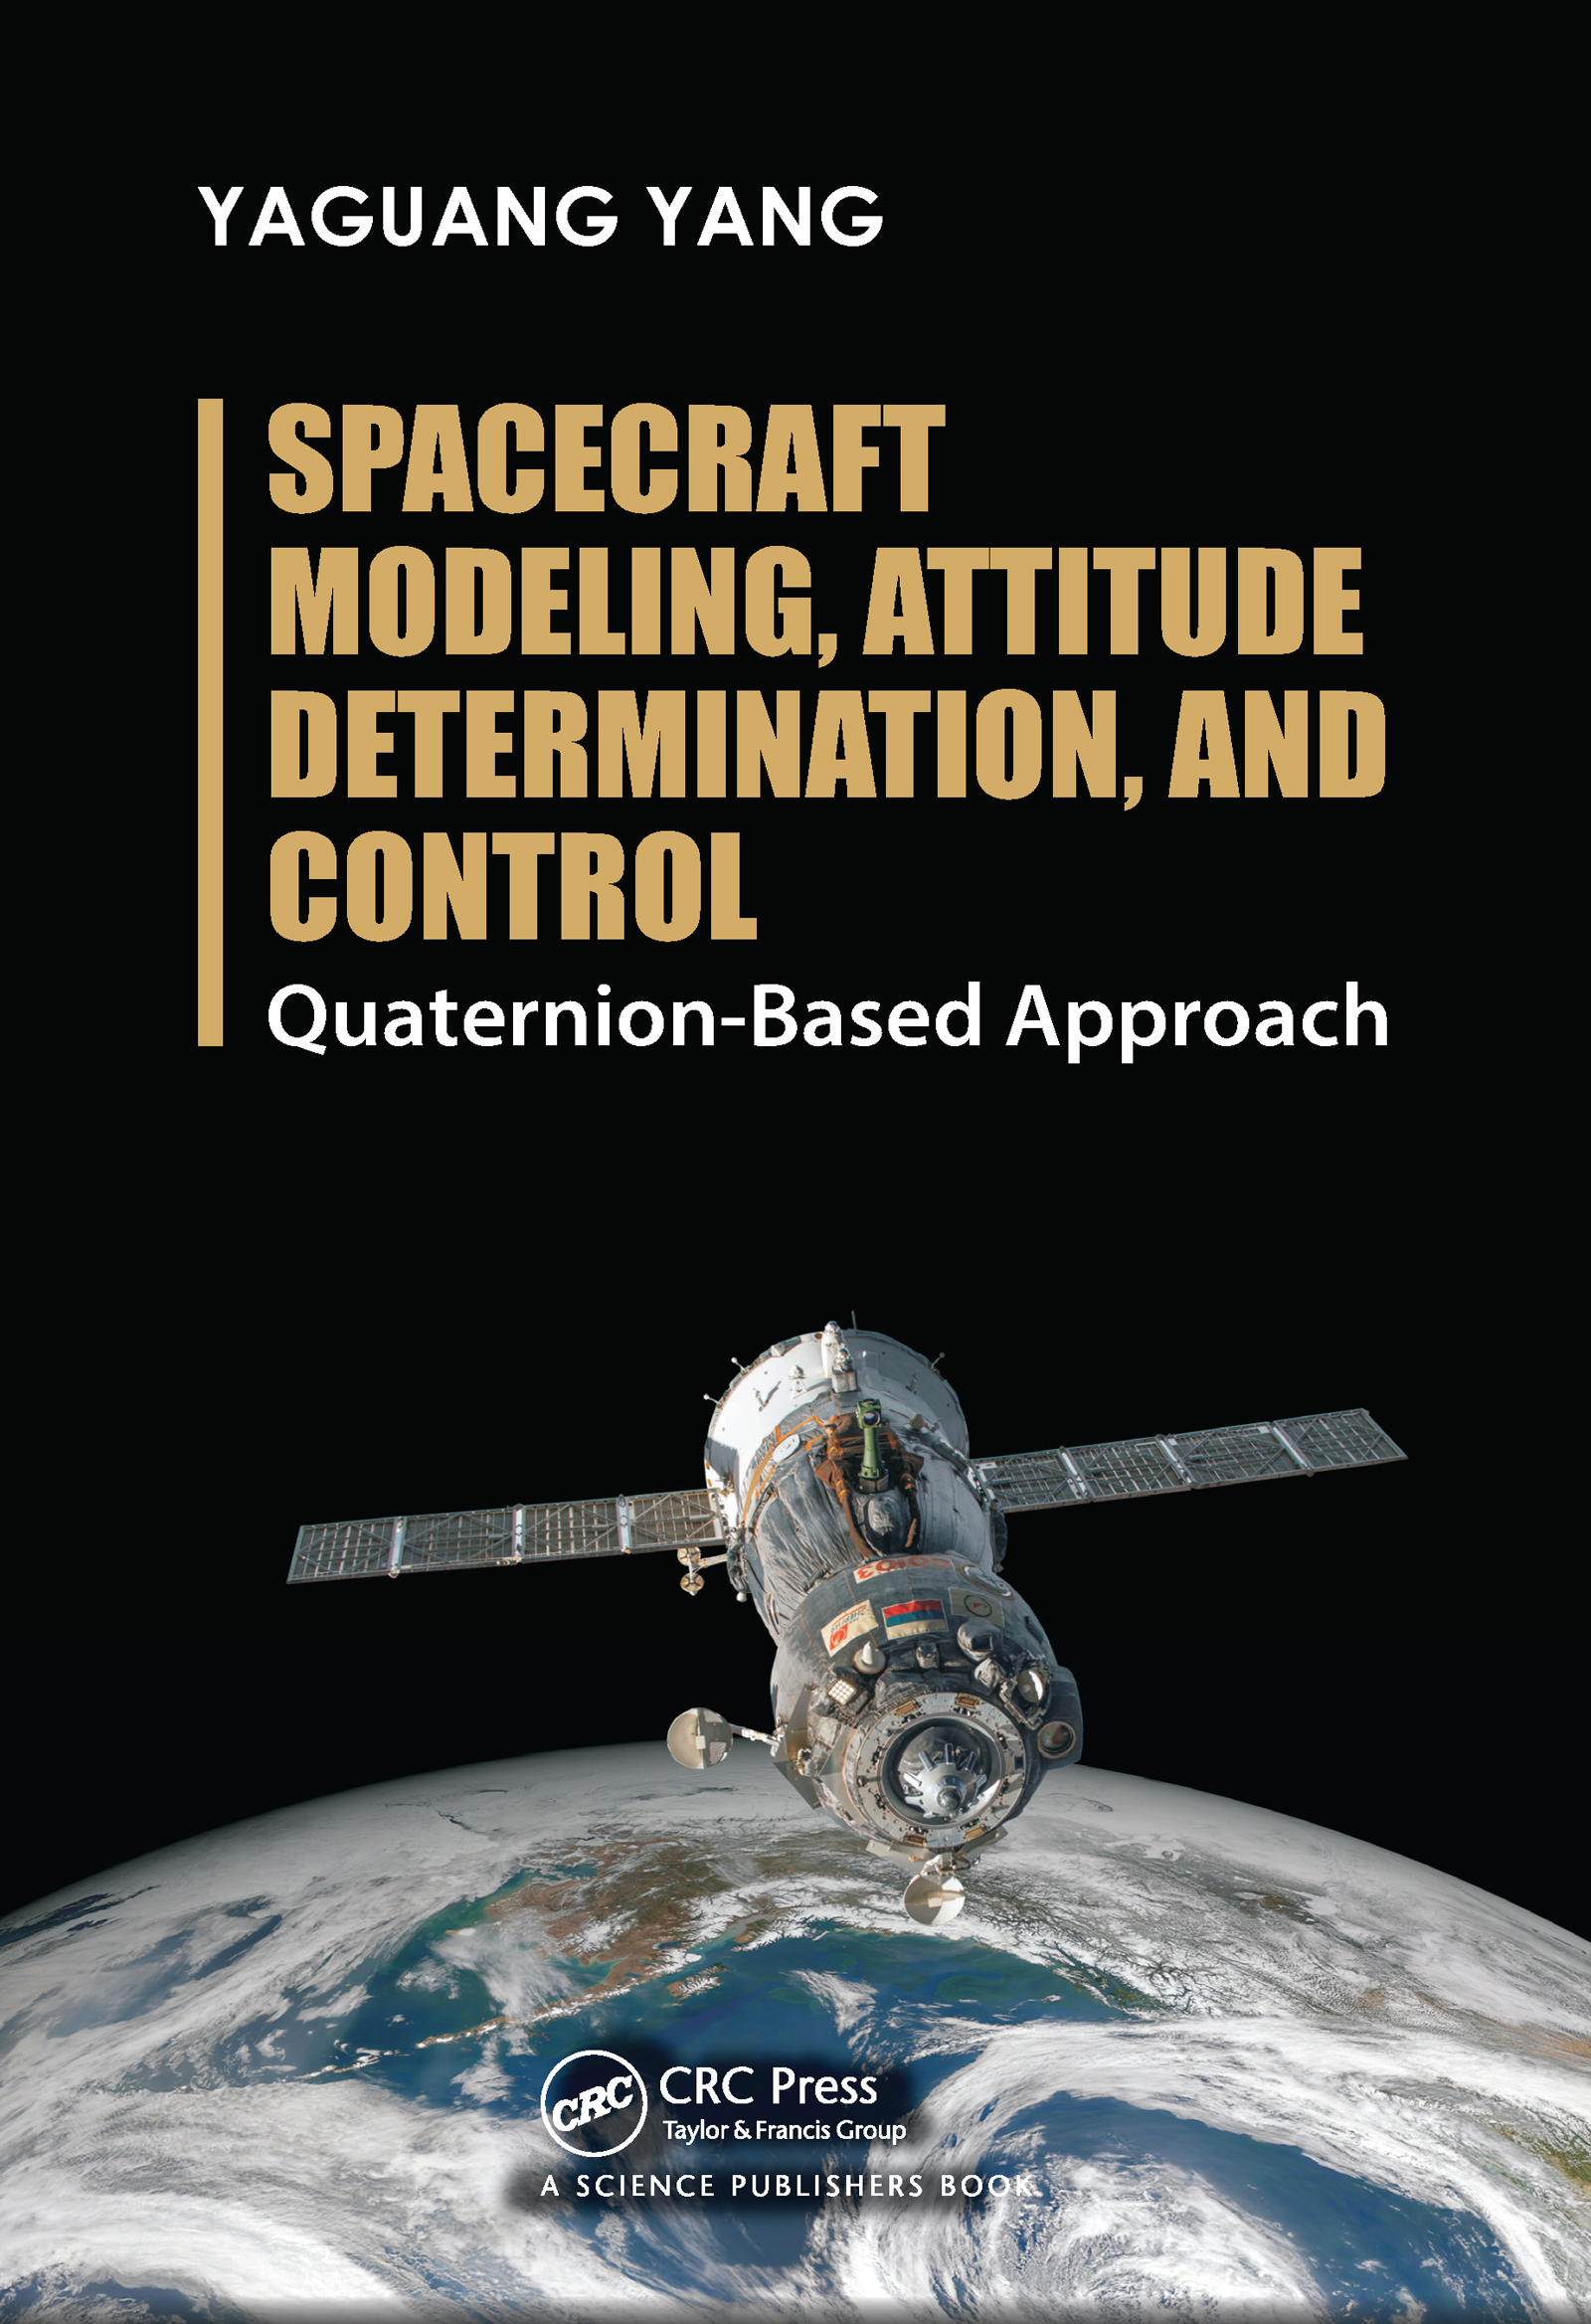 Spacecraft Modeling, Attitude Determination, and Control